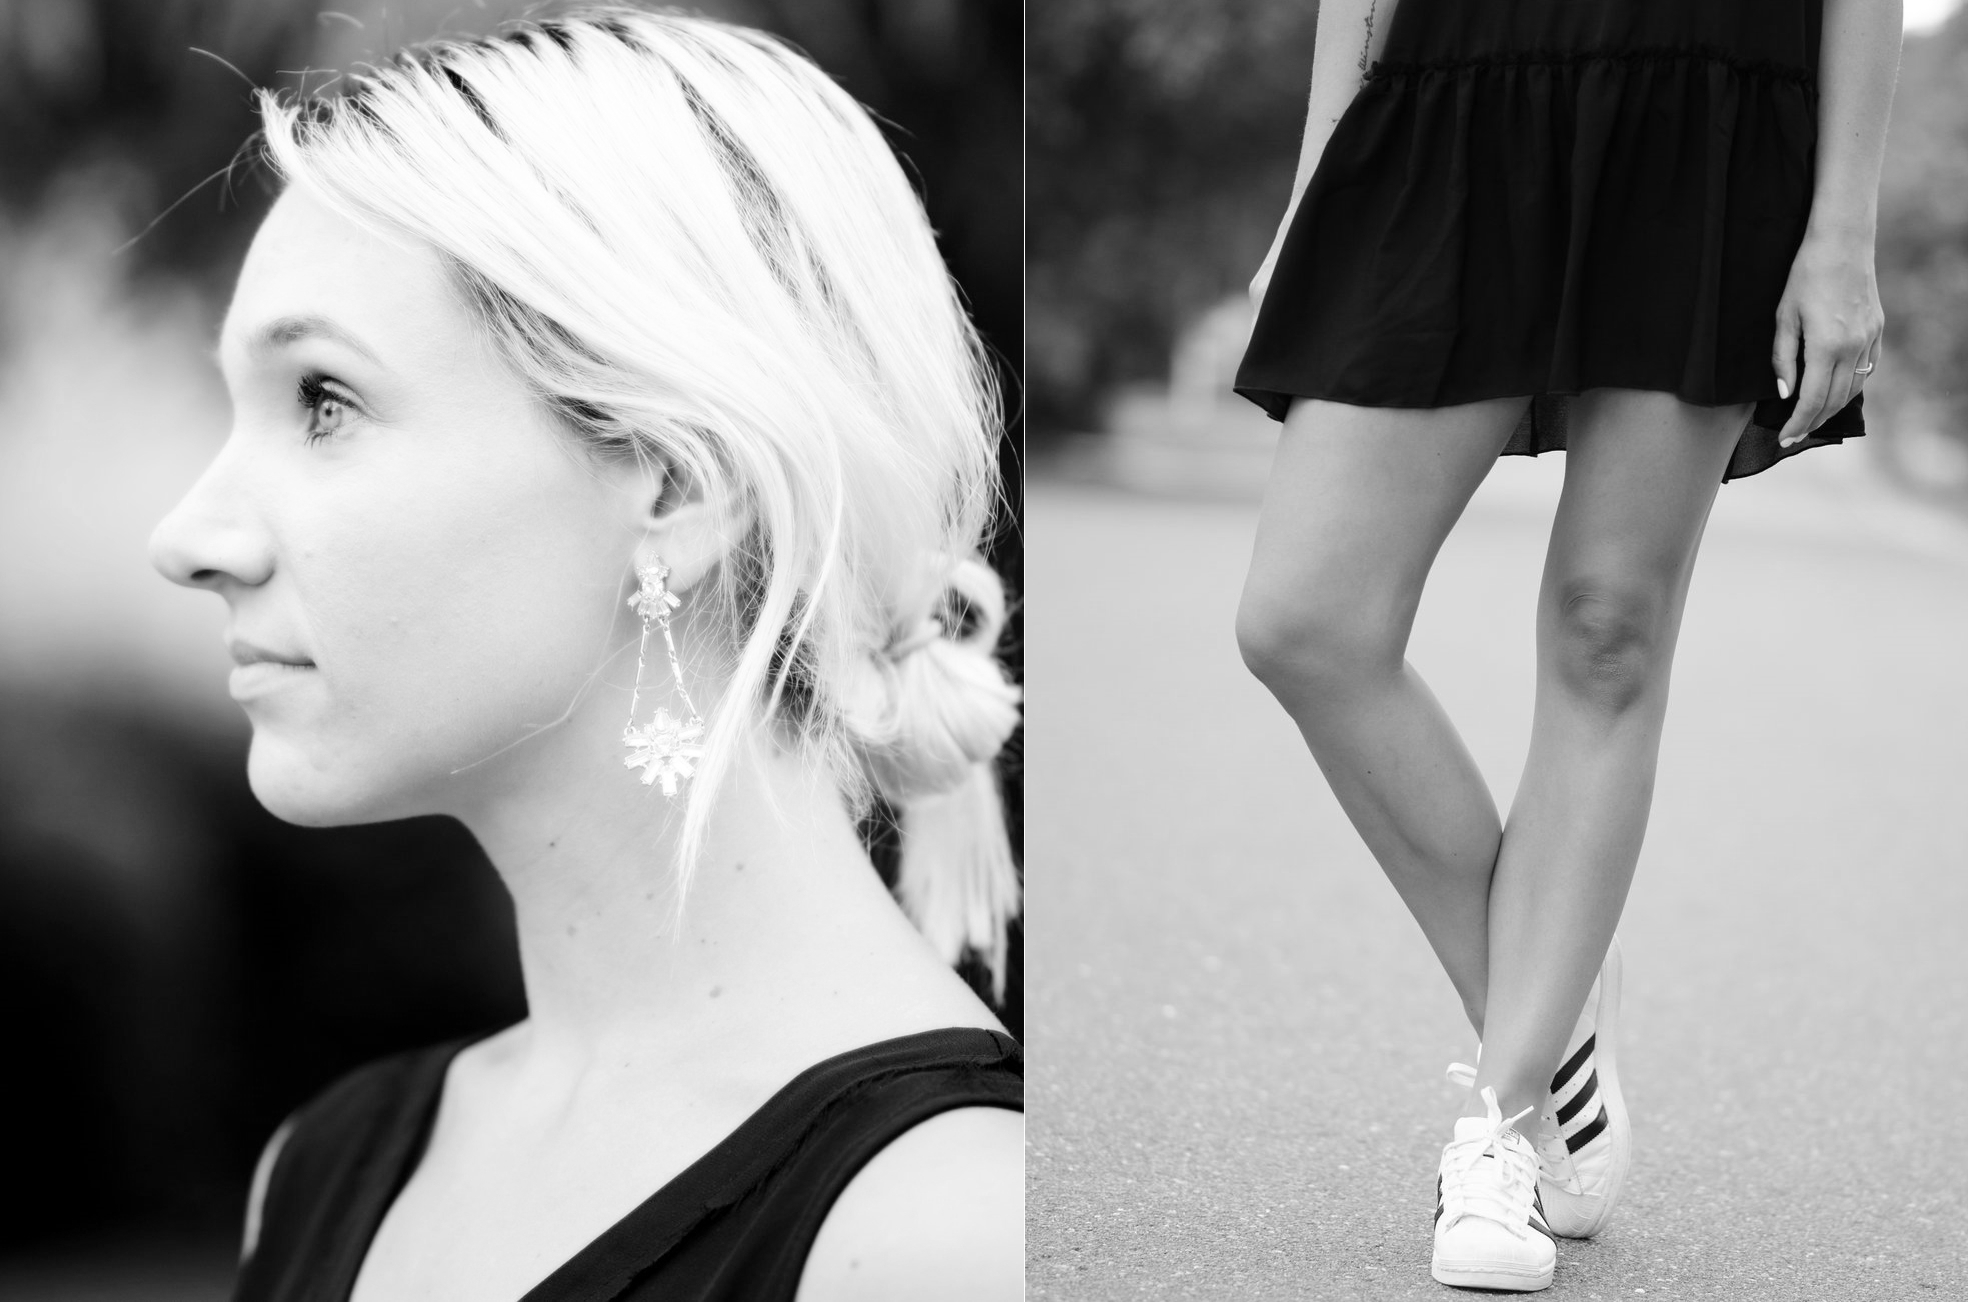 _DSC0722.jpg earrings and sneakers. splice.jpg